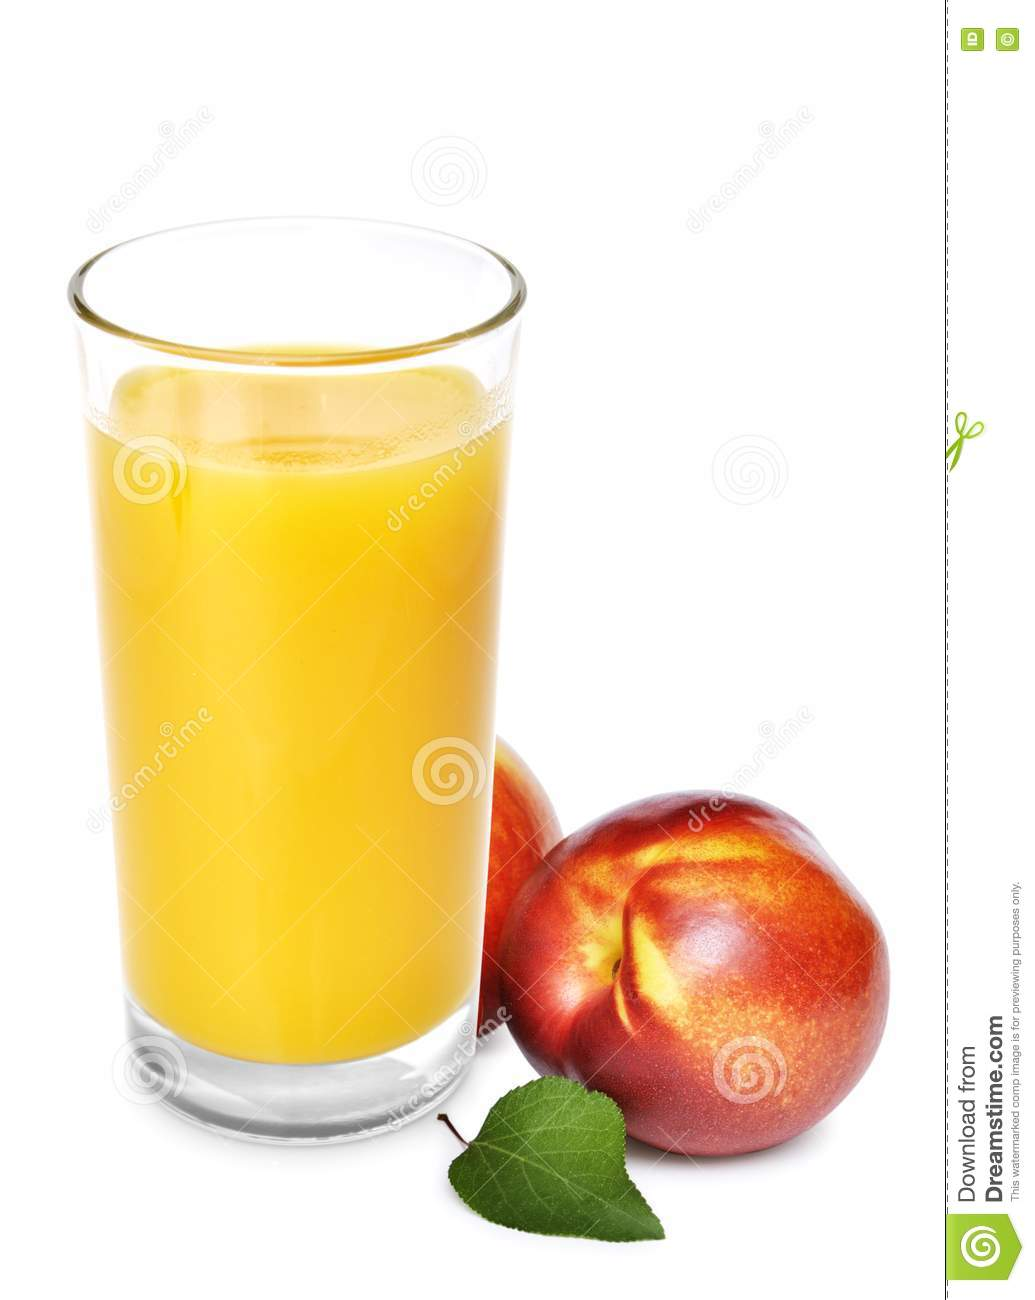 Peach Juice Royalty Free Stock Photo - Image: 20836595